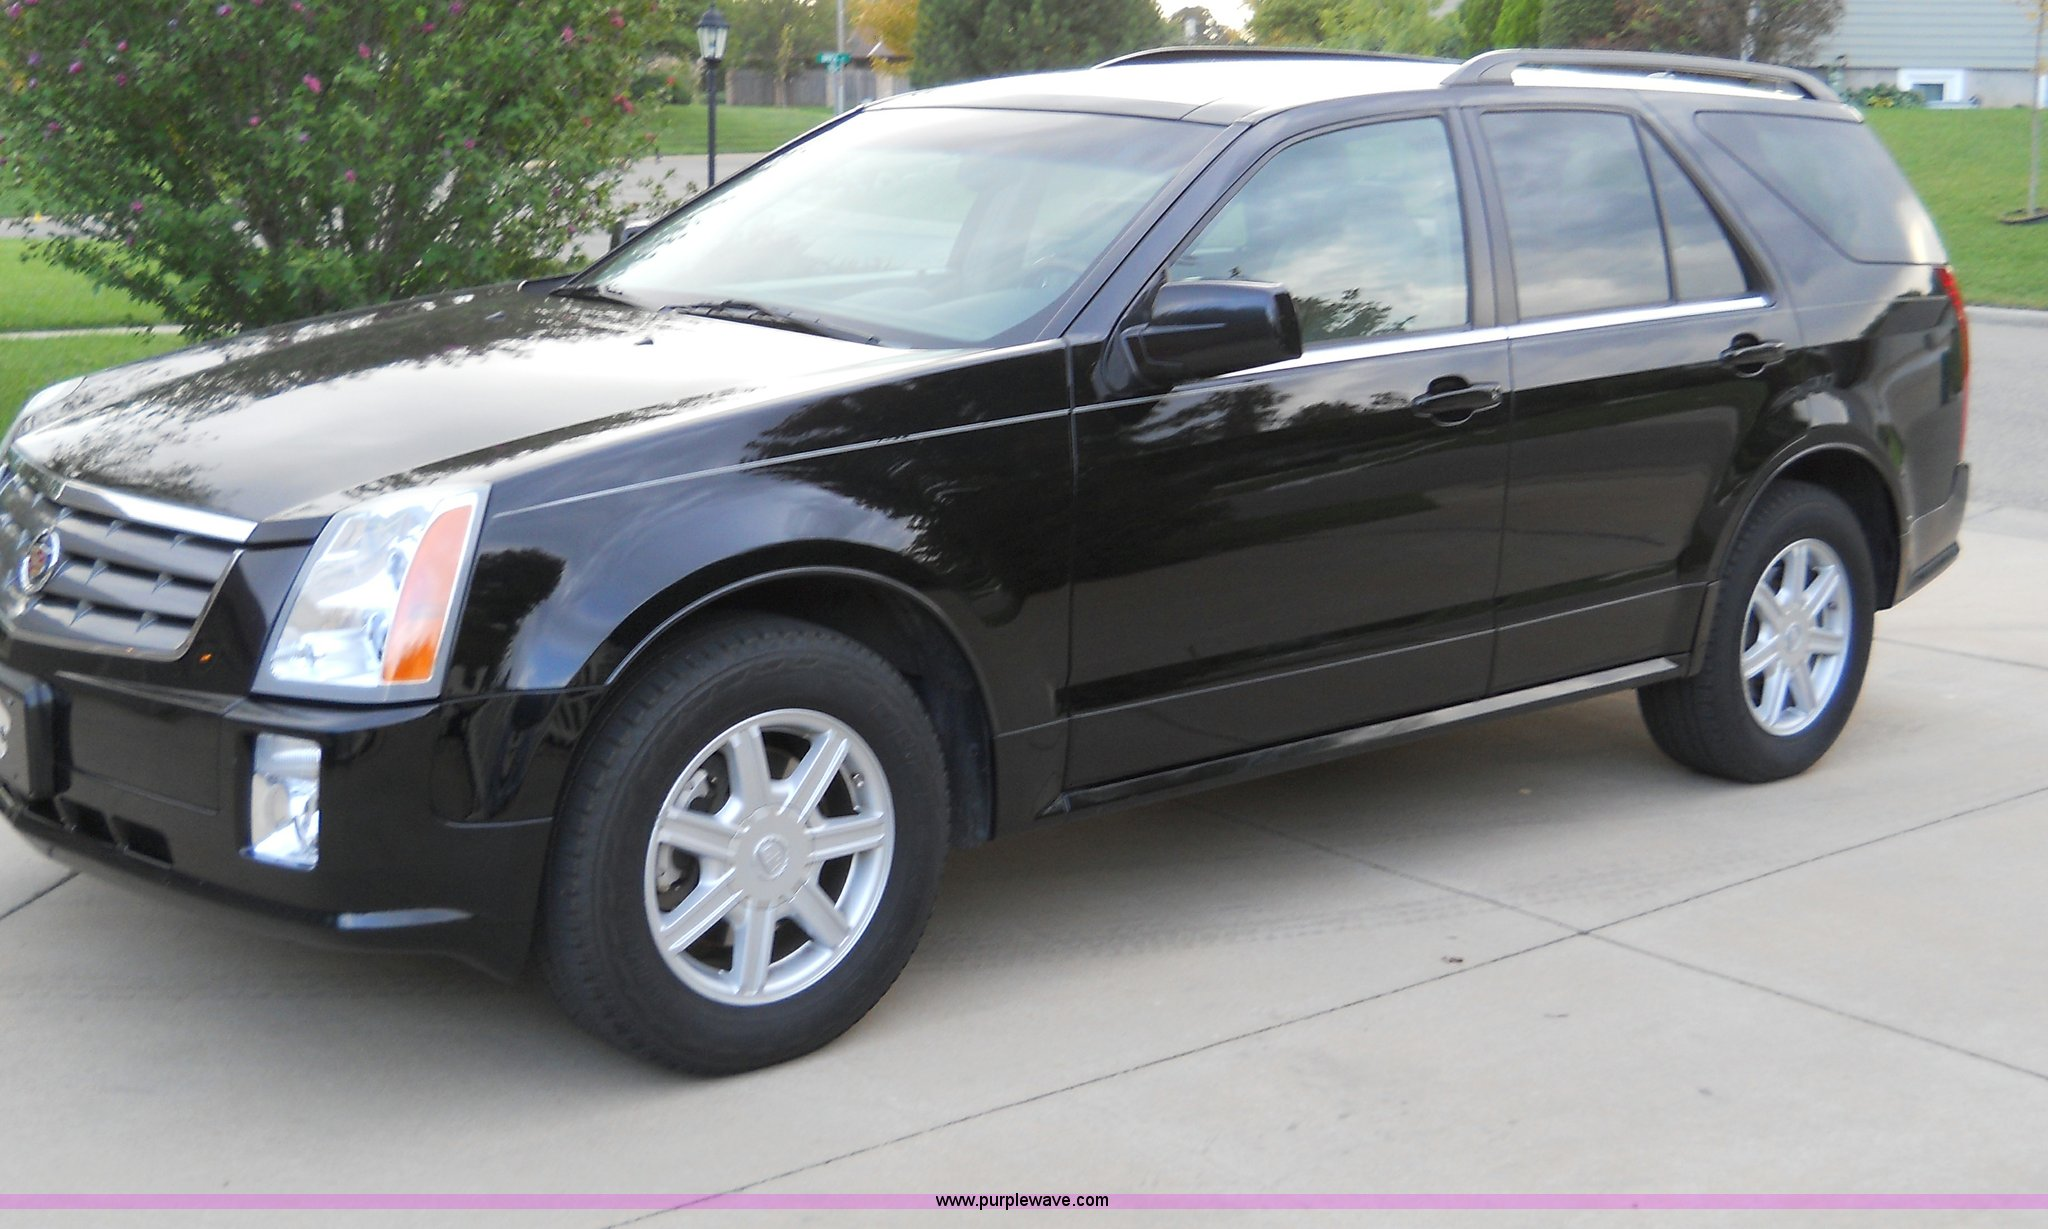 cadillac suv cars luxury best money challenges review phelan story suvs mark